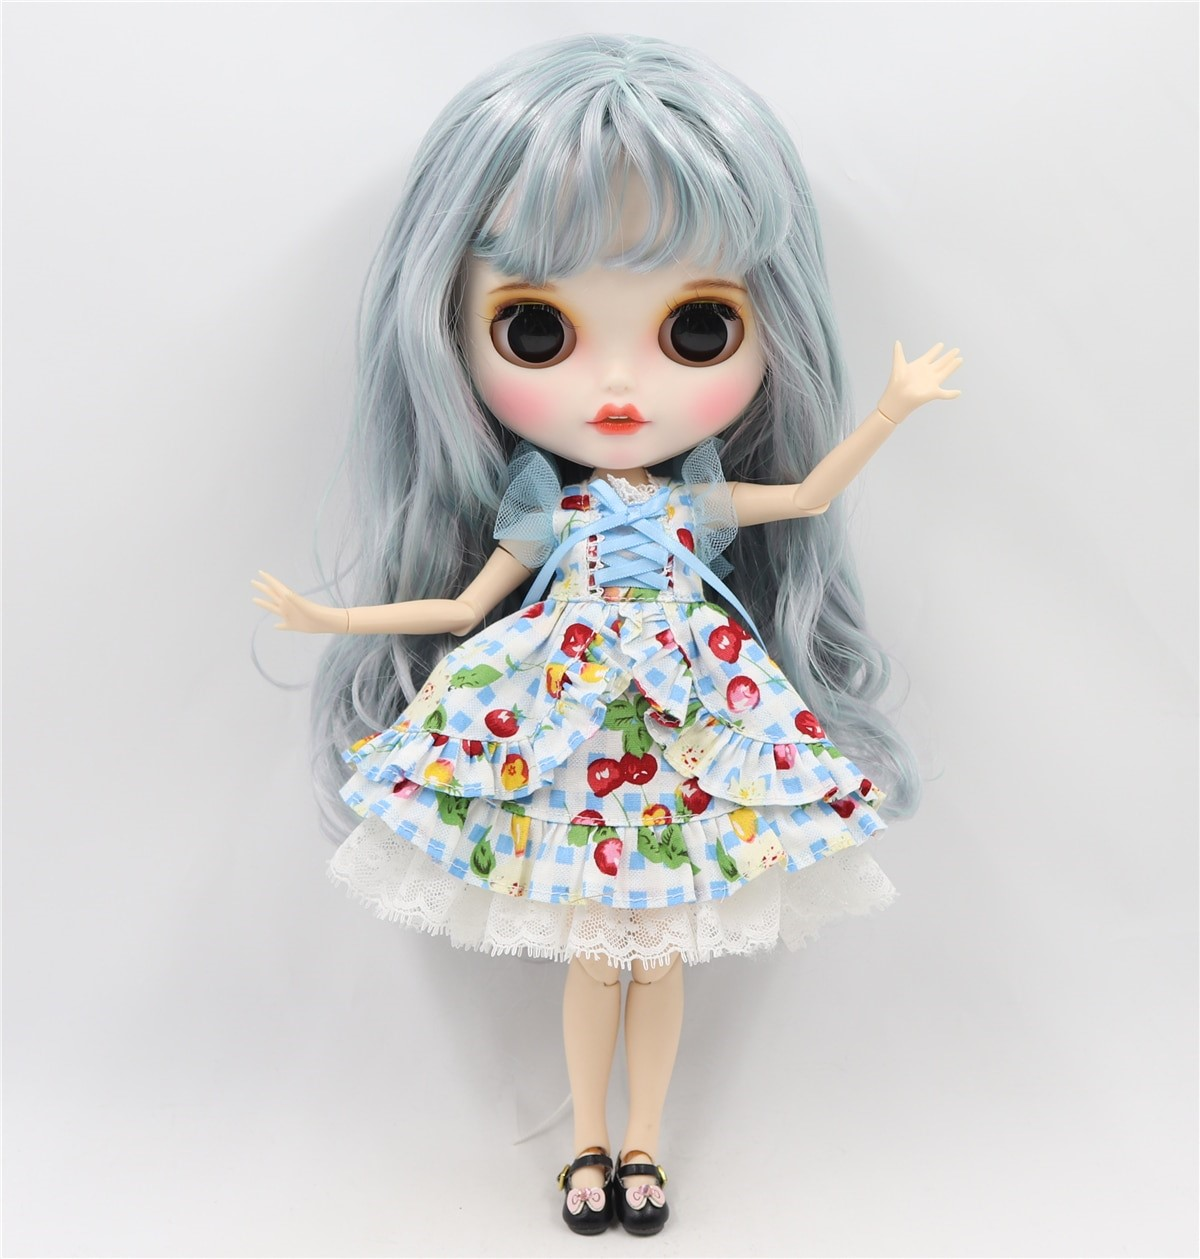 Lizzie - Premium Custom Blythe Doll with Clothes Smiling Face Premium Blythe Dolls 🆕 Smiling Face